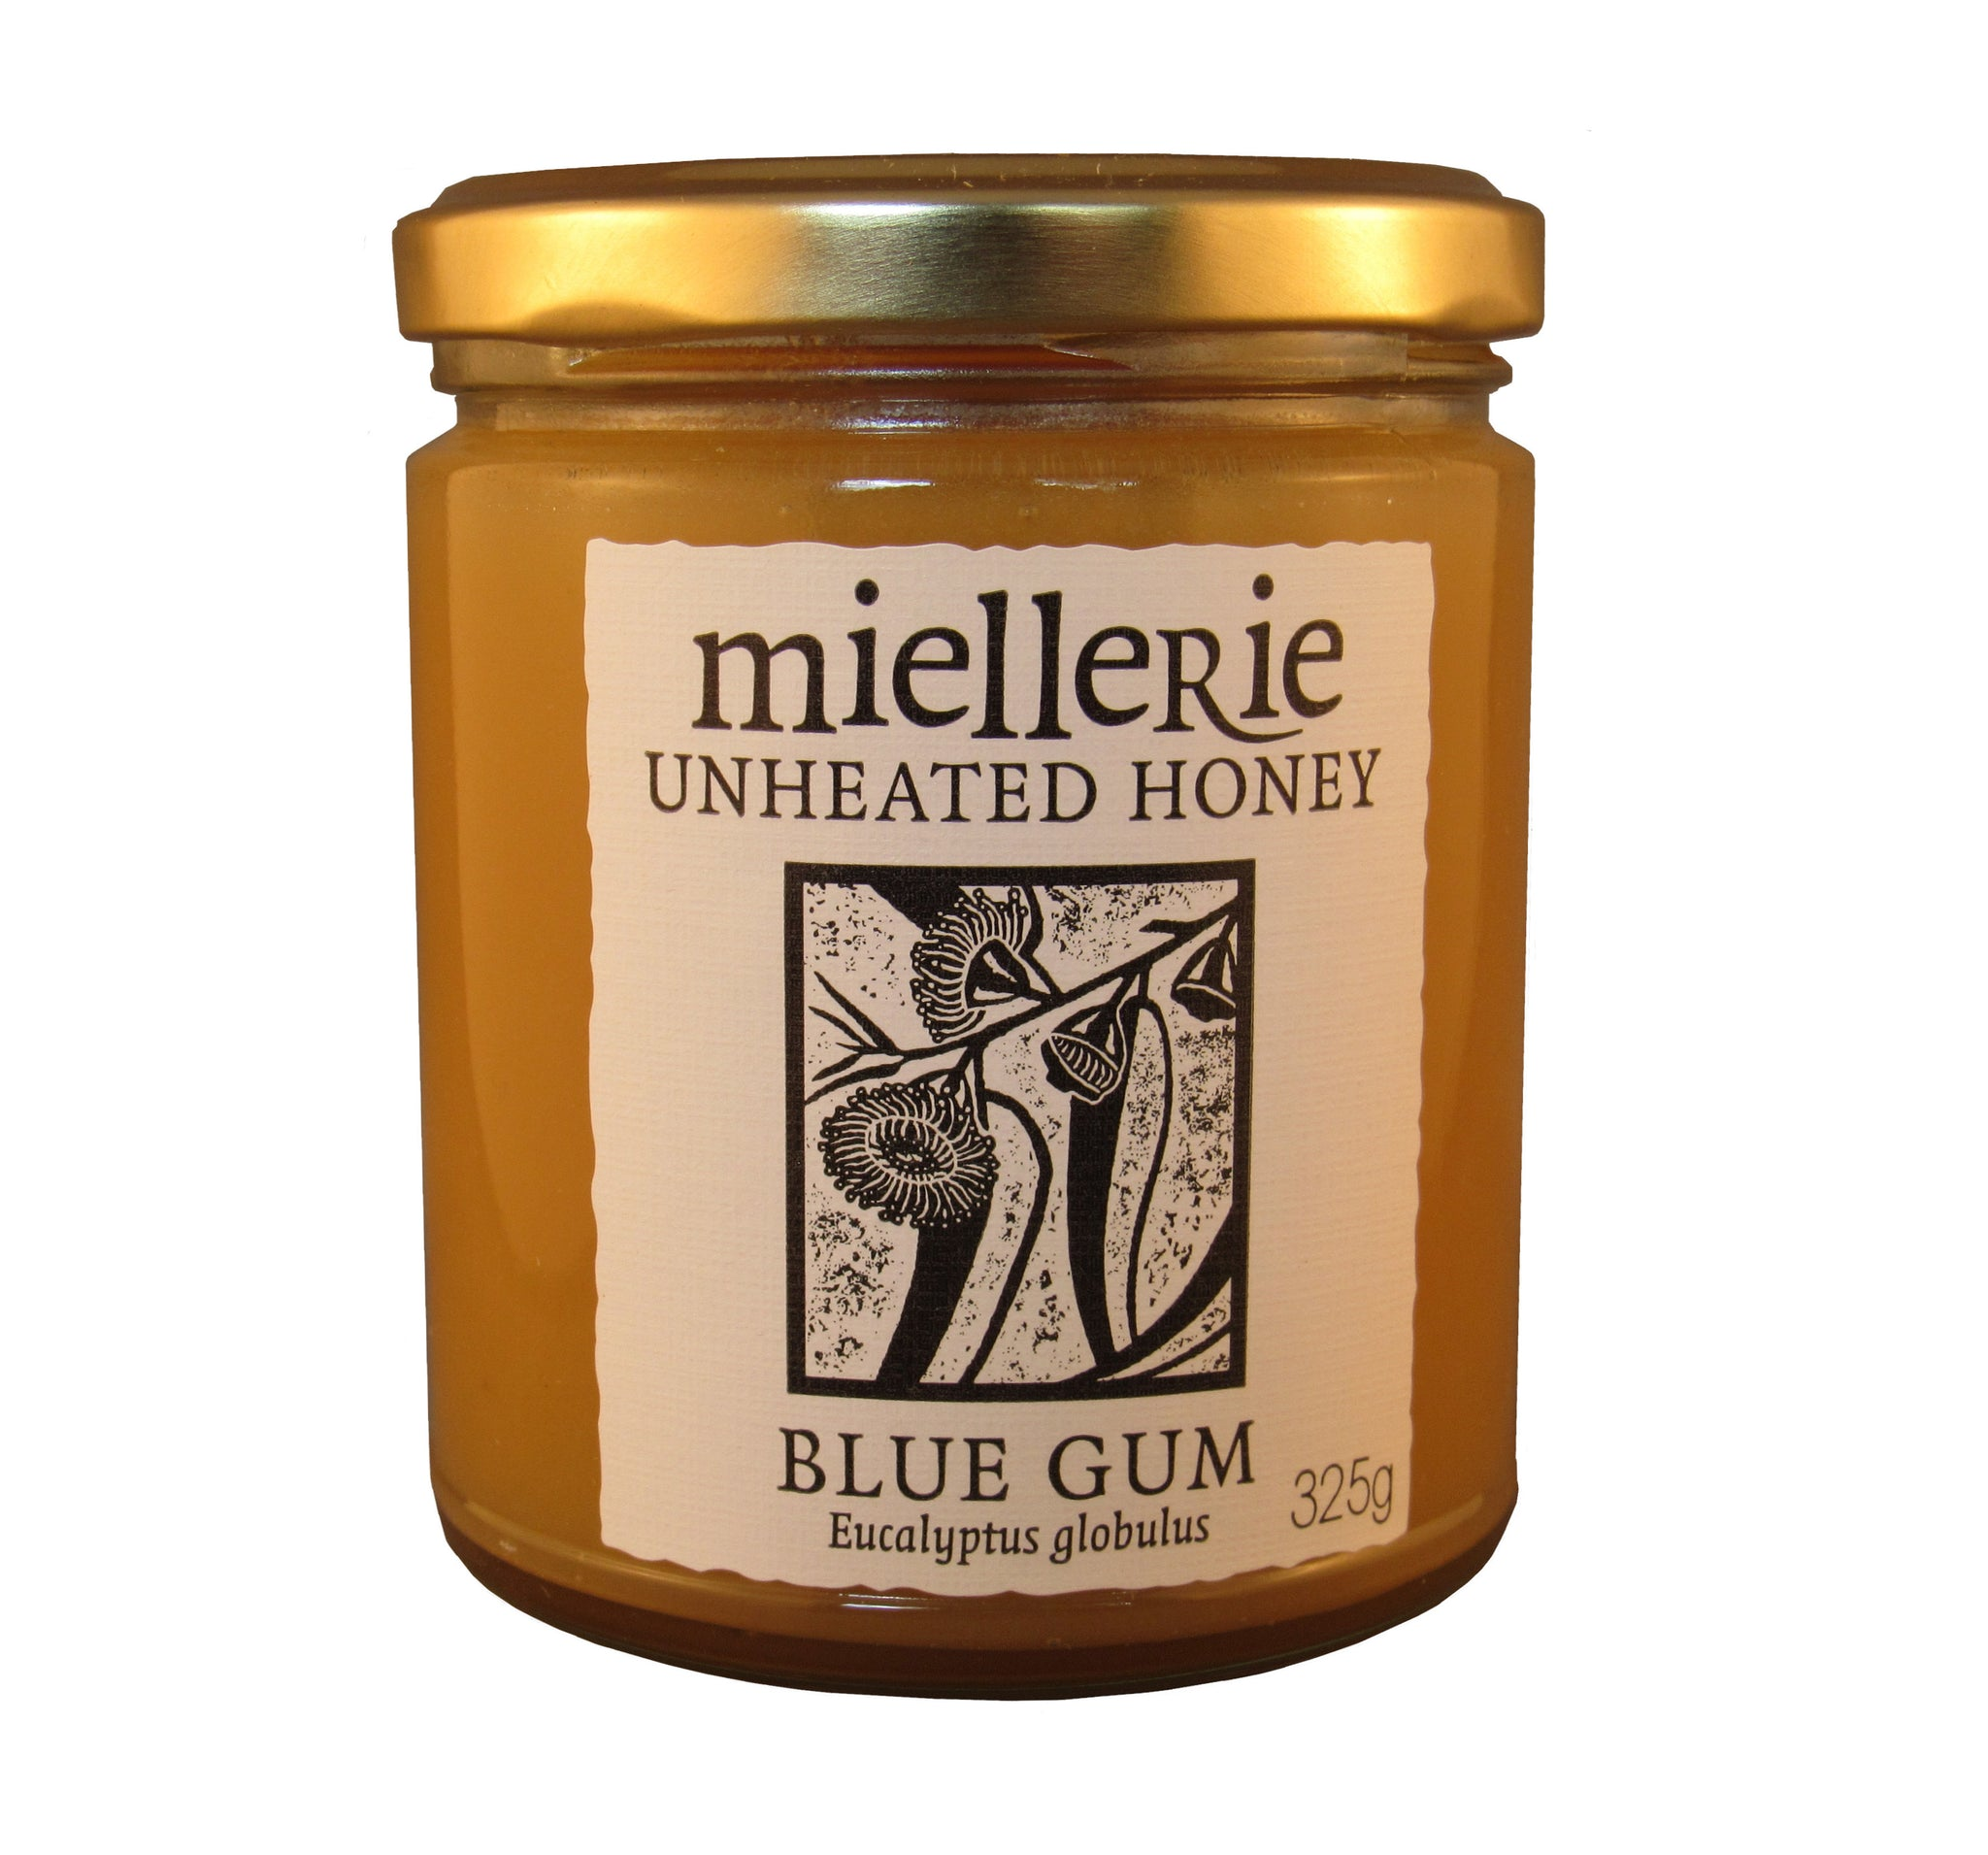 Blue Gum honey, Miellerie, Unheated, 325gms